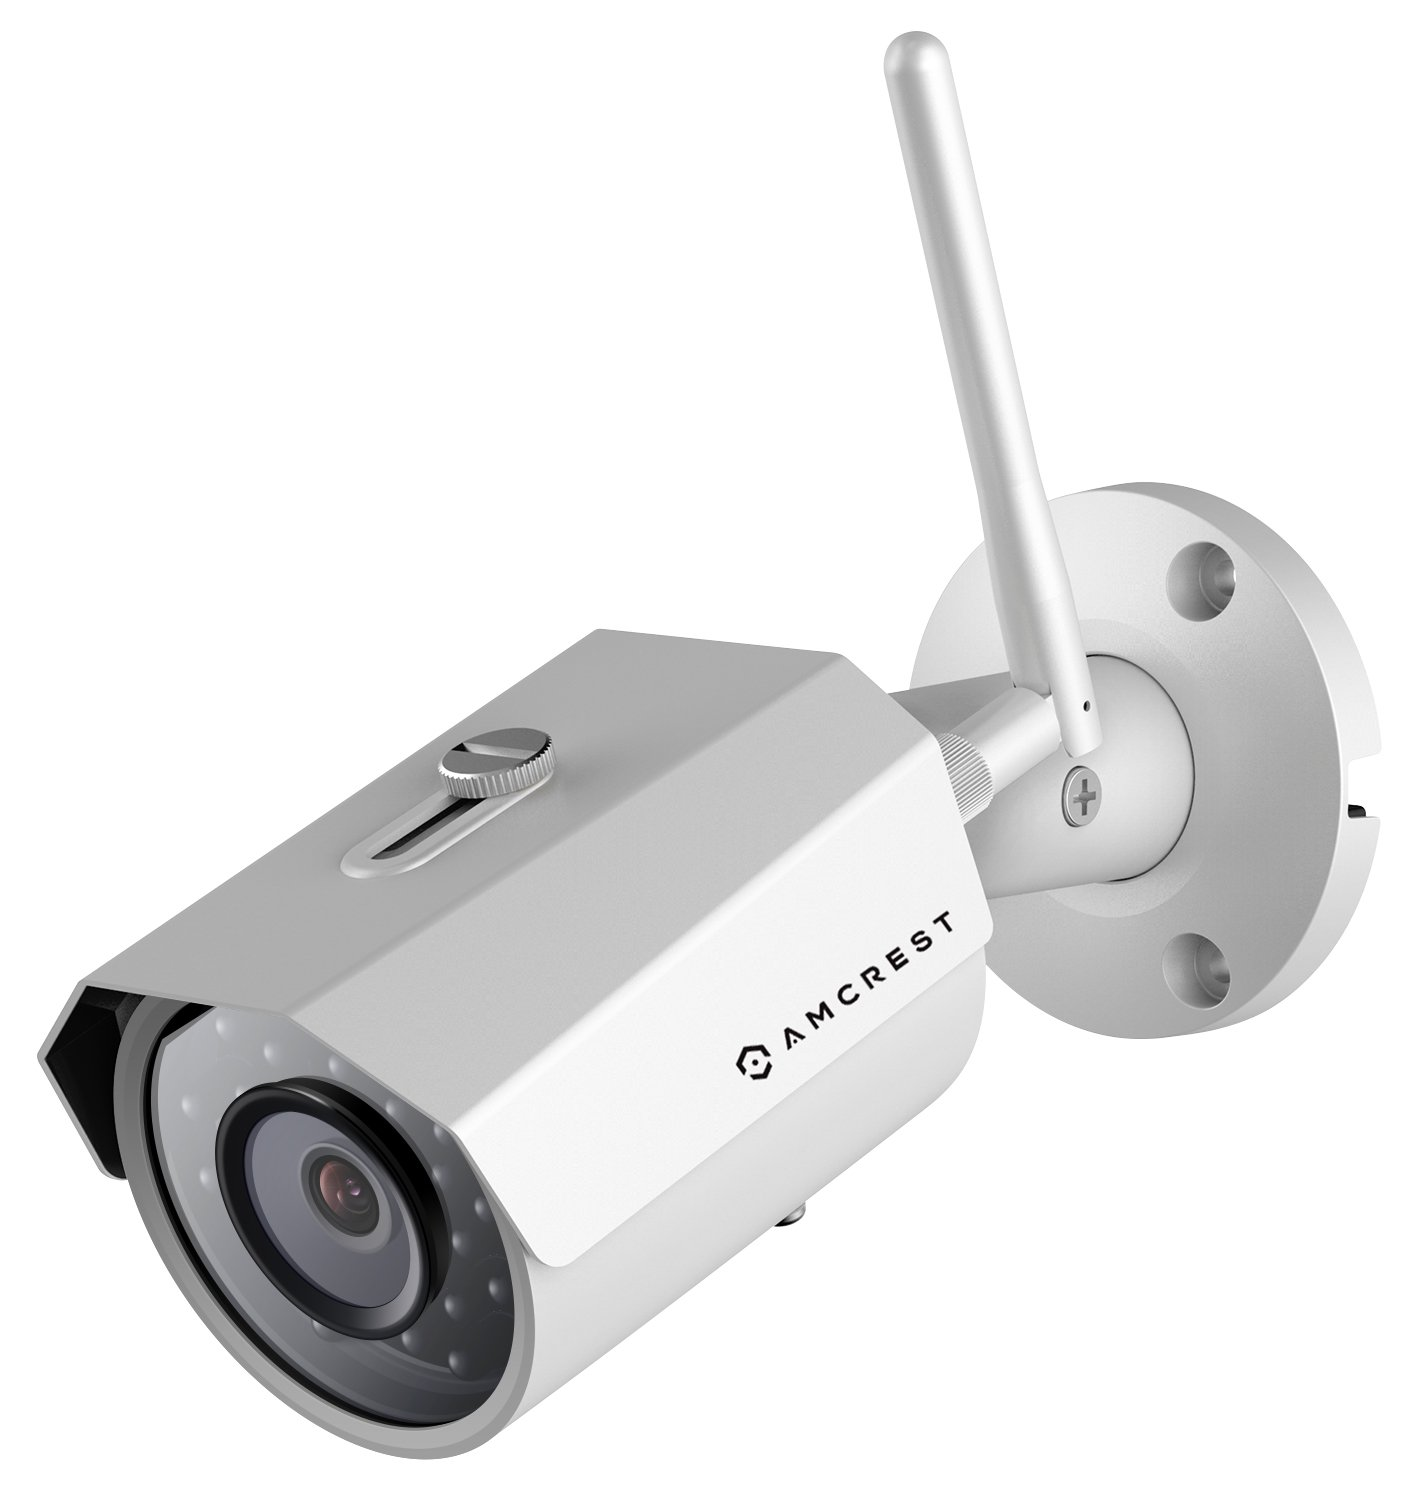 Amcrest 2K 3MP Wireless Outdoor Security Camera ProHD 1080P / 1296P (2304TVL) Bullet IP WiFi Outdoor Camera - Full HD 1080P @ 30fps and 1296P @ 20fps, IP67, 98ft Night Vision, IP3M-943W (White) by Amcrest